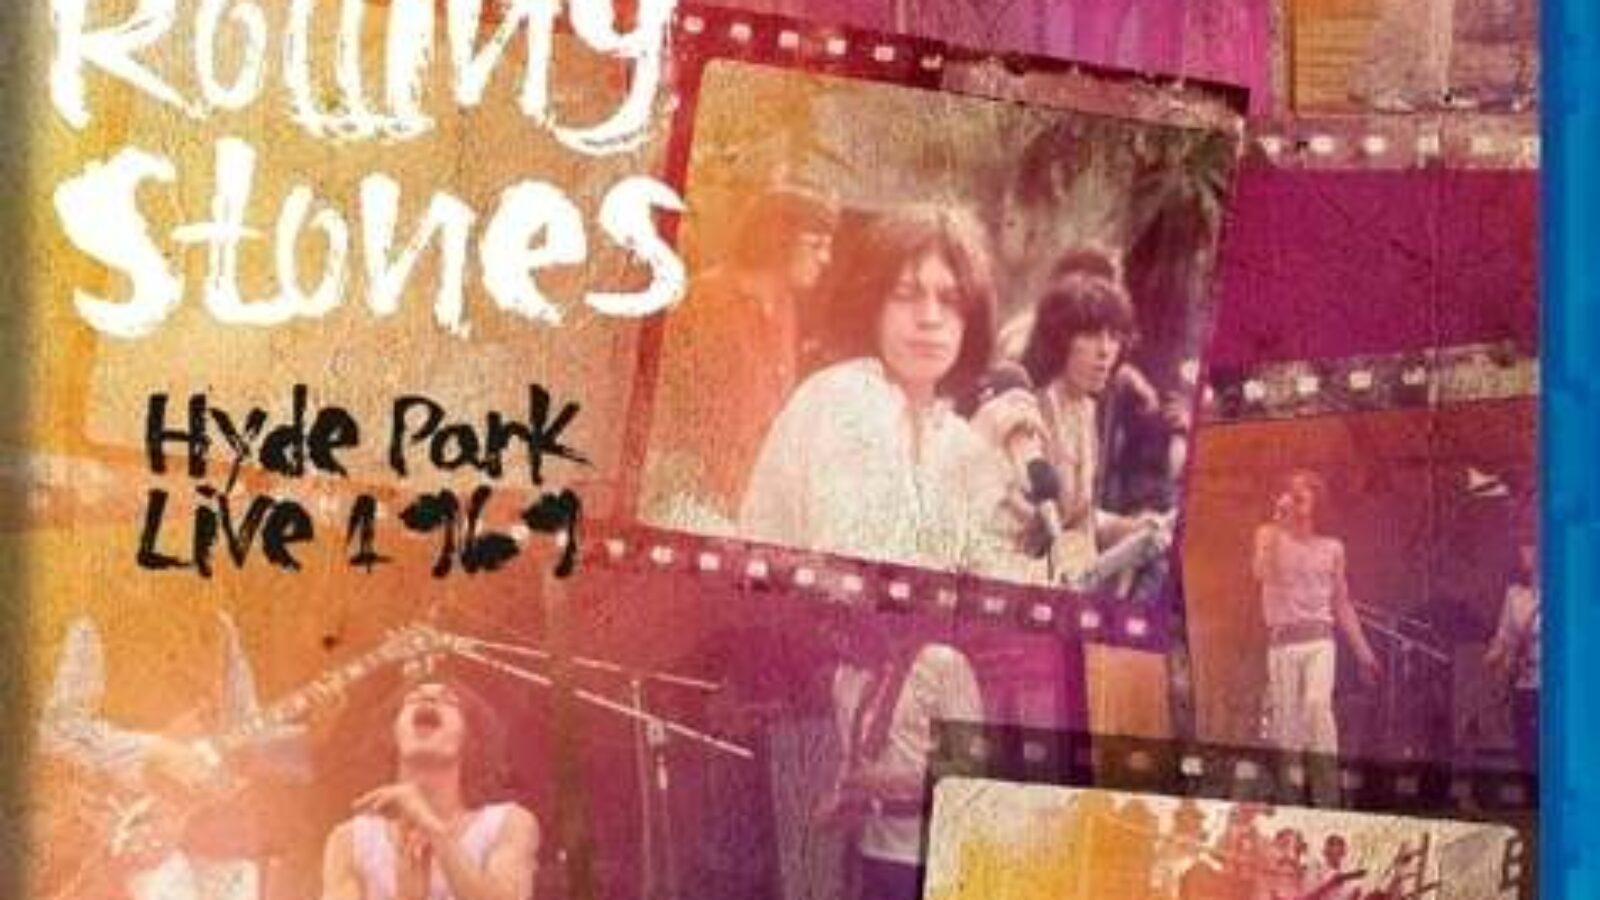 OXMOX Musik-Tipp: THE ROLLING STONES, Hyde Park Live 1969